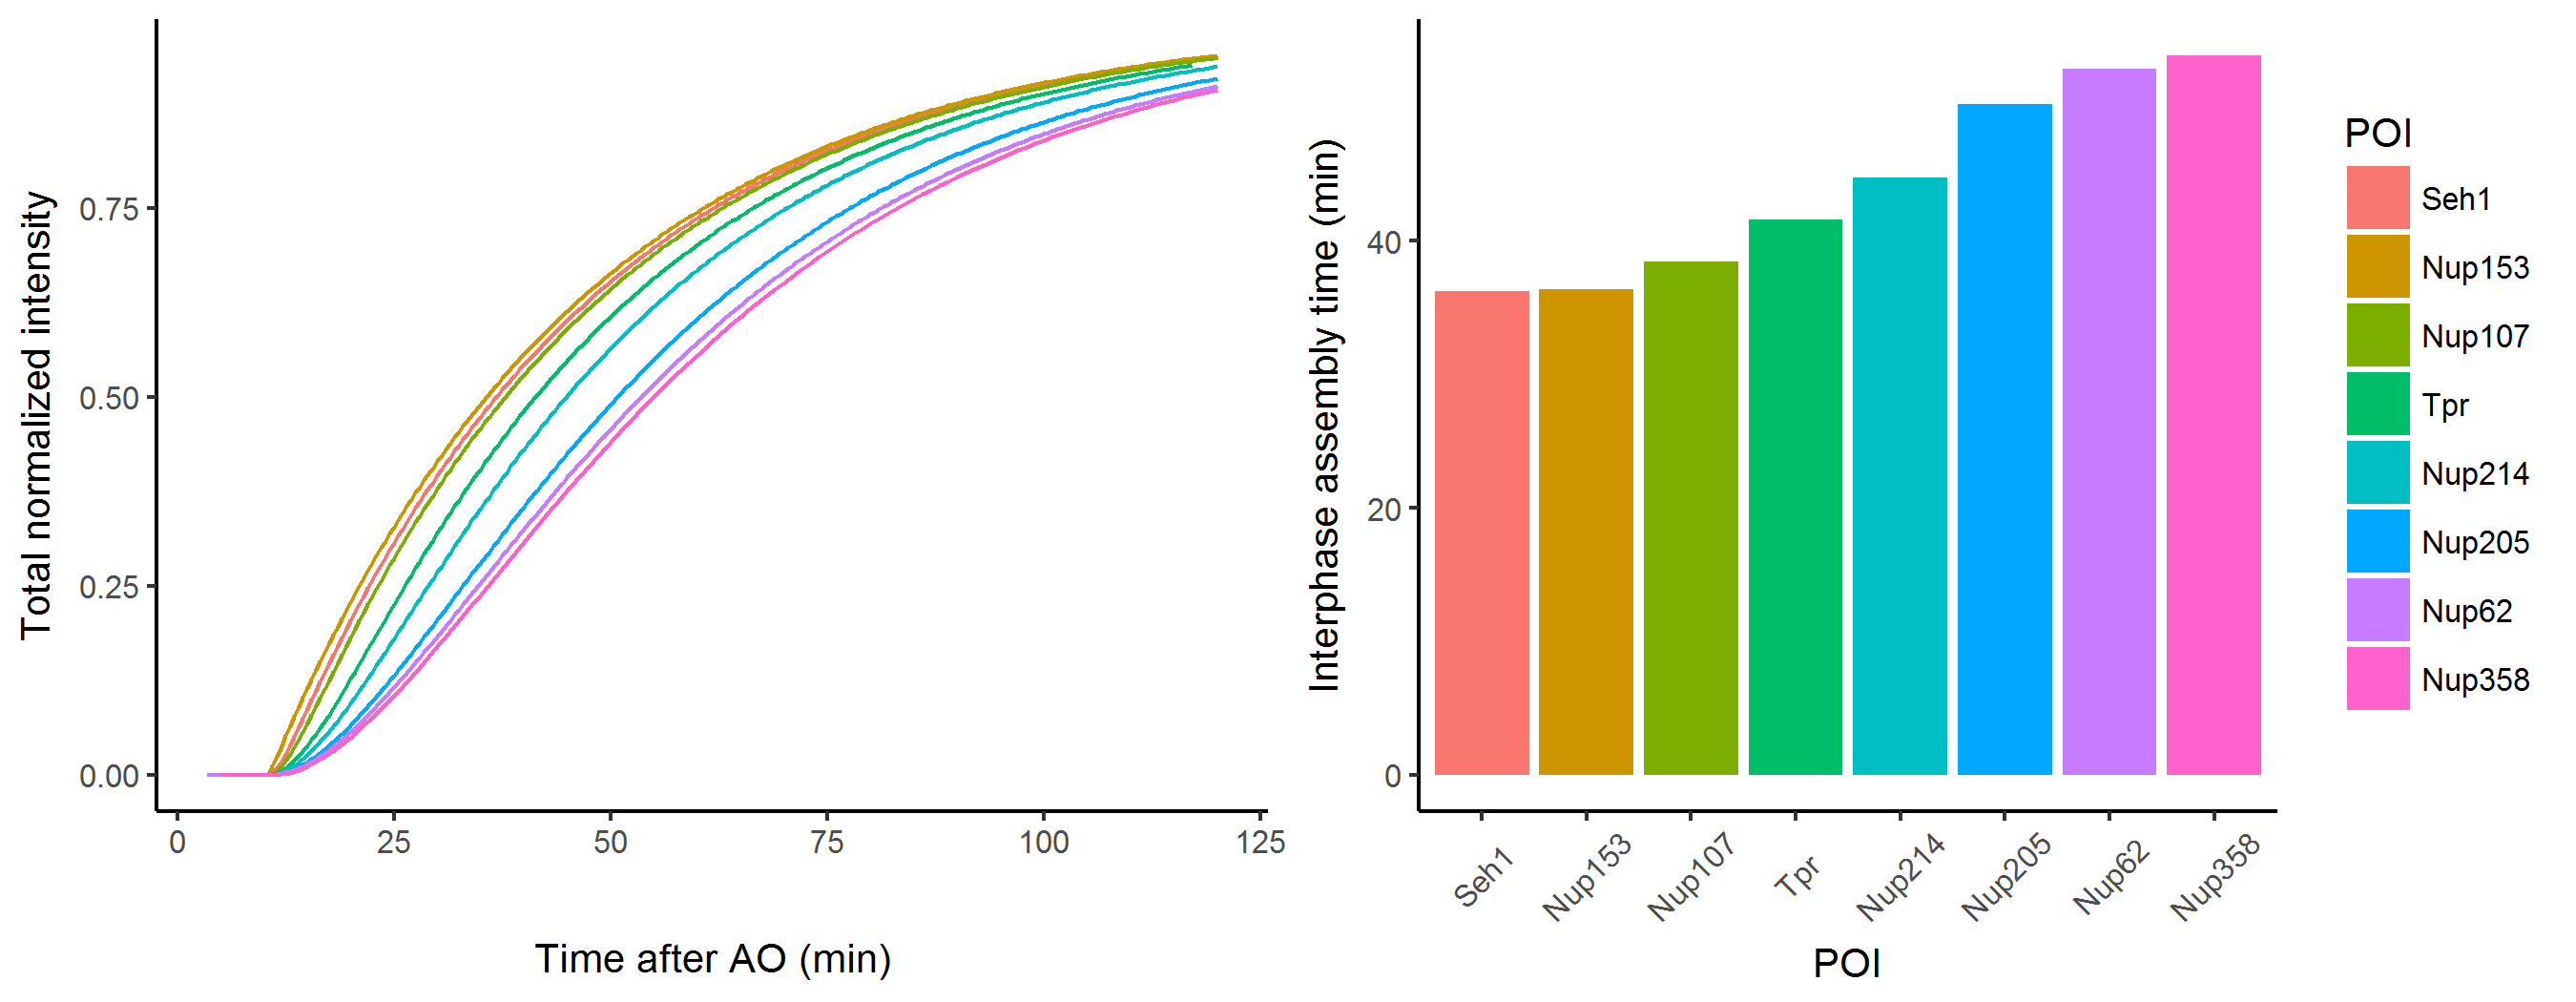 results/fitnups_2018/simulated_fixedpar_interphase.png